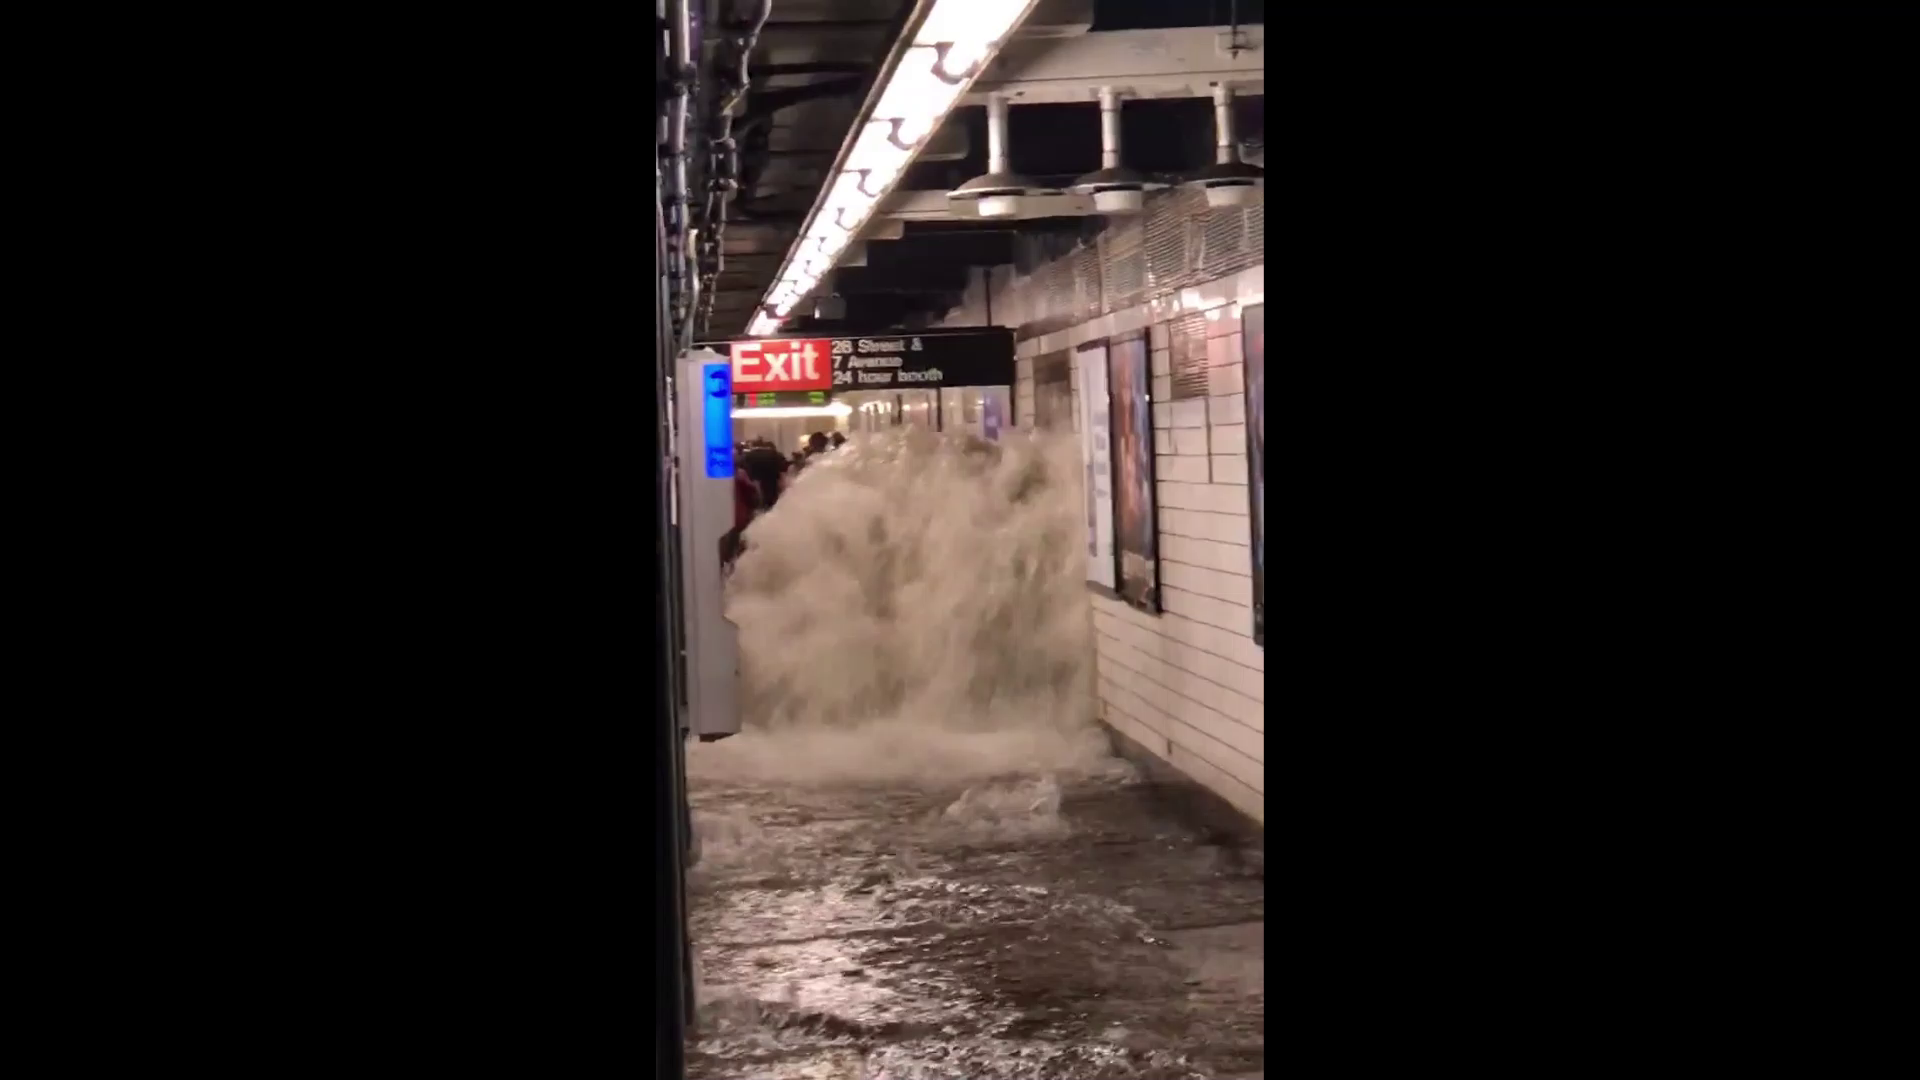 some weather we're having #6 - New York subway recently after the passage of Hurricane Ida